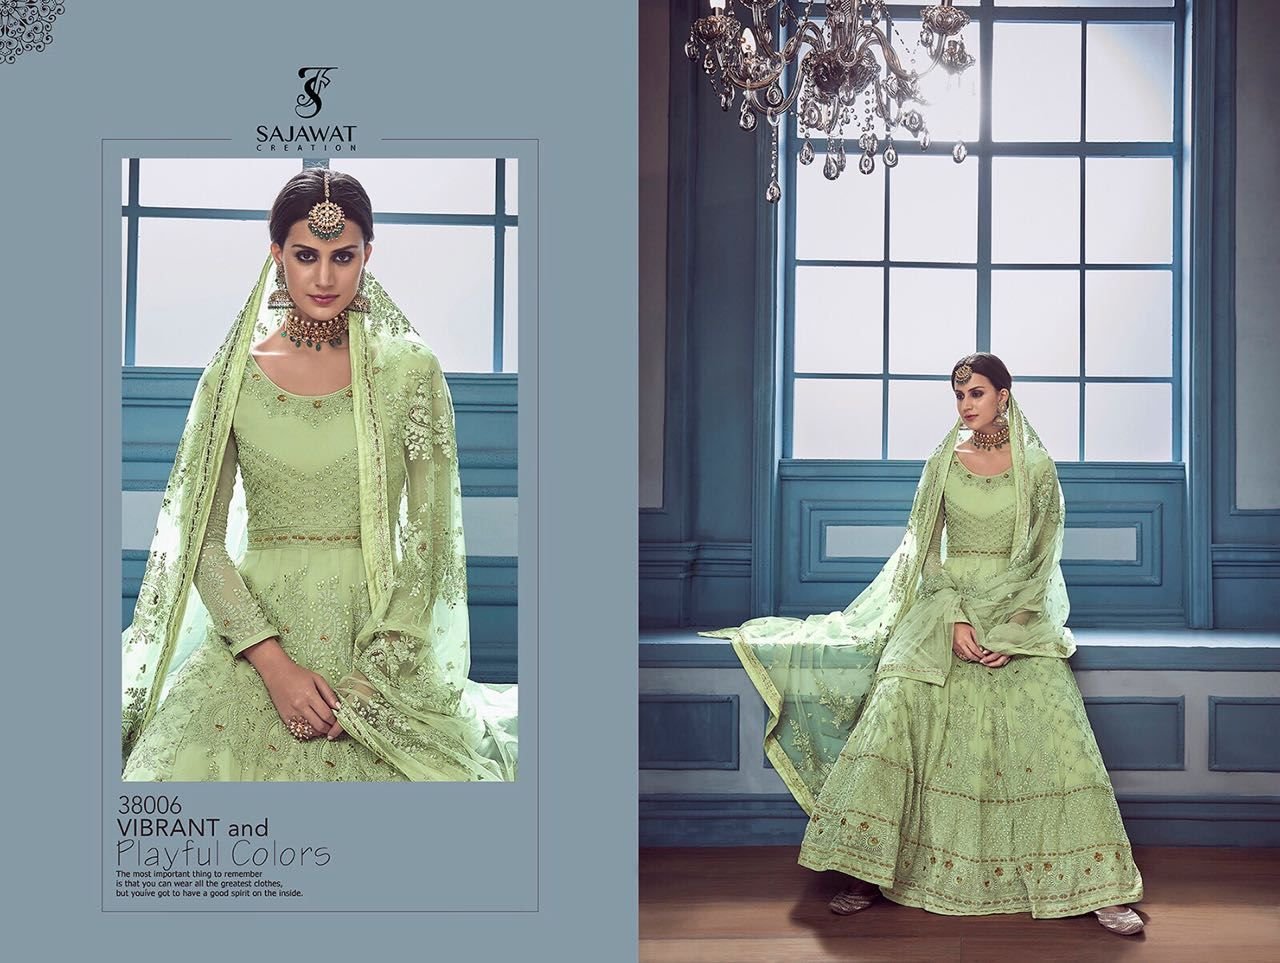 81b6411776 SAJAWAT CREATION BEGUM GEORGETTE HEAVY WORK PARTY WEAR SALWAR SUIT CATALOG  MANUFACTURER WHOLESALER AND EXPORTER OF INDIAN ETHNIC WEAR IN INDIA | Sagar  Impex